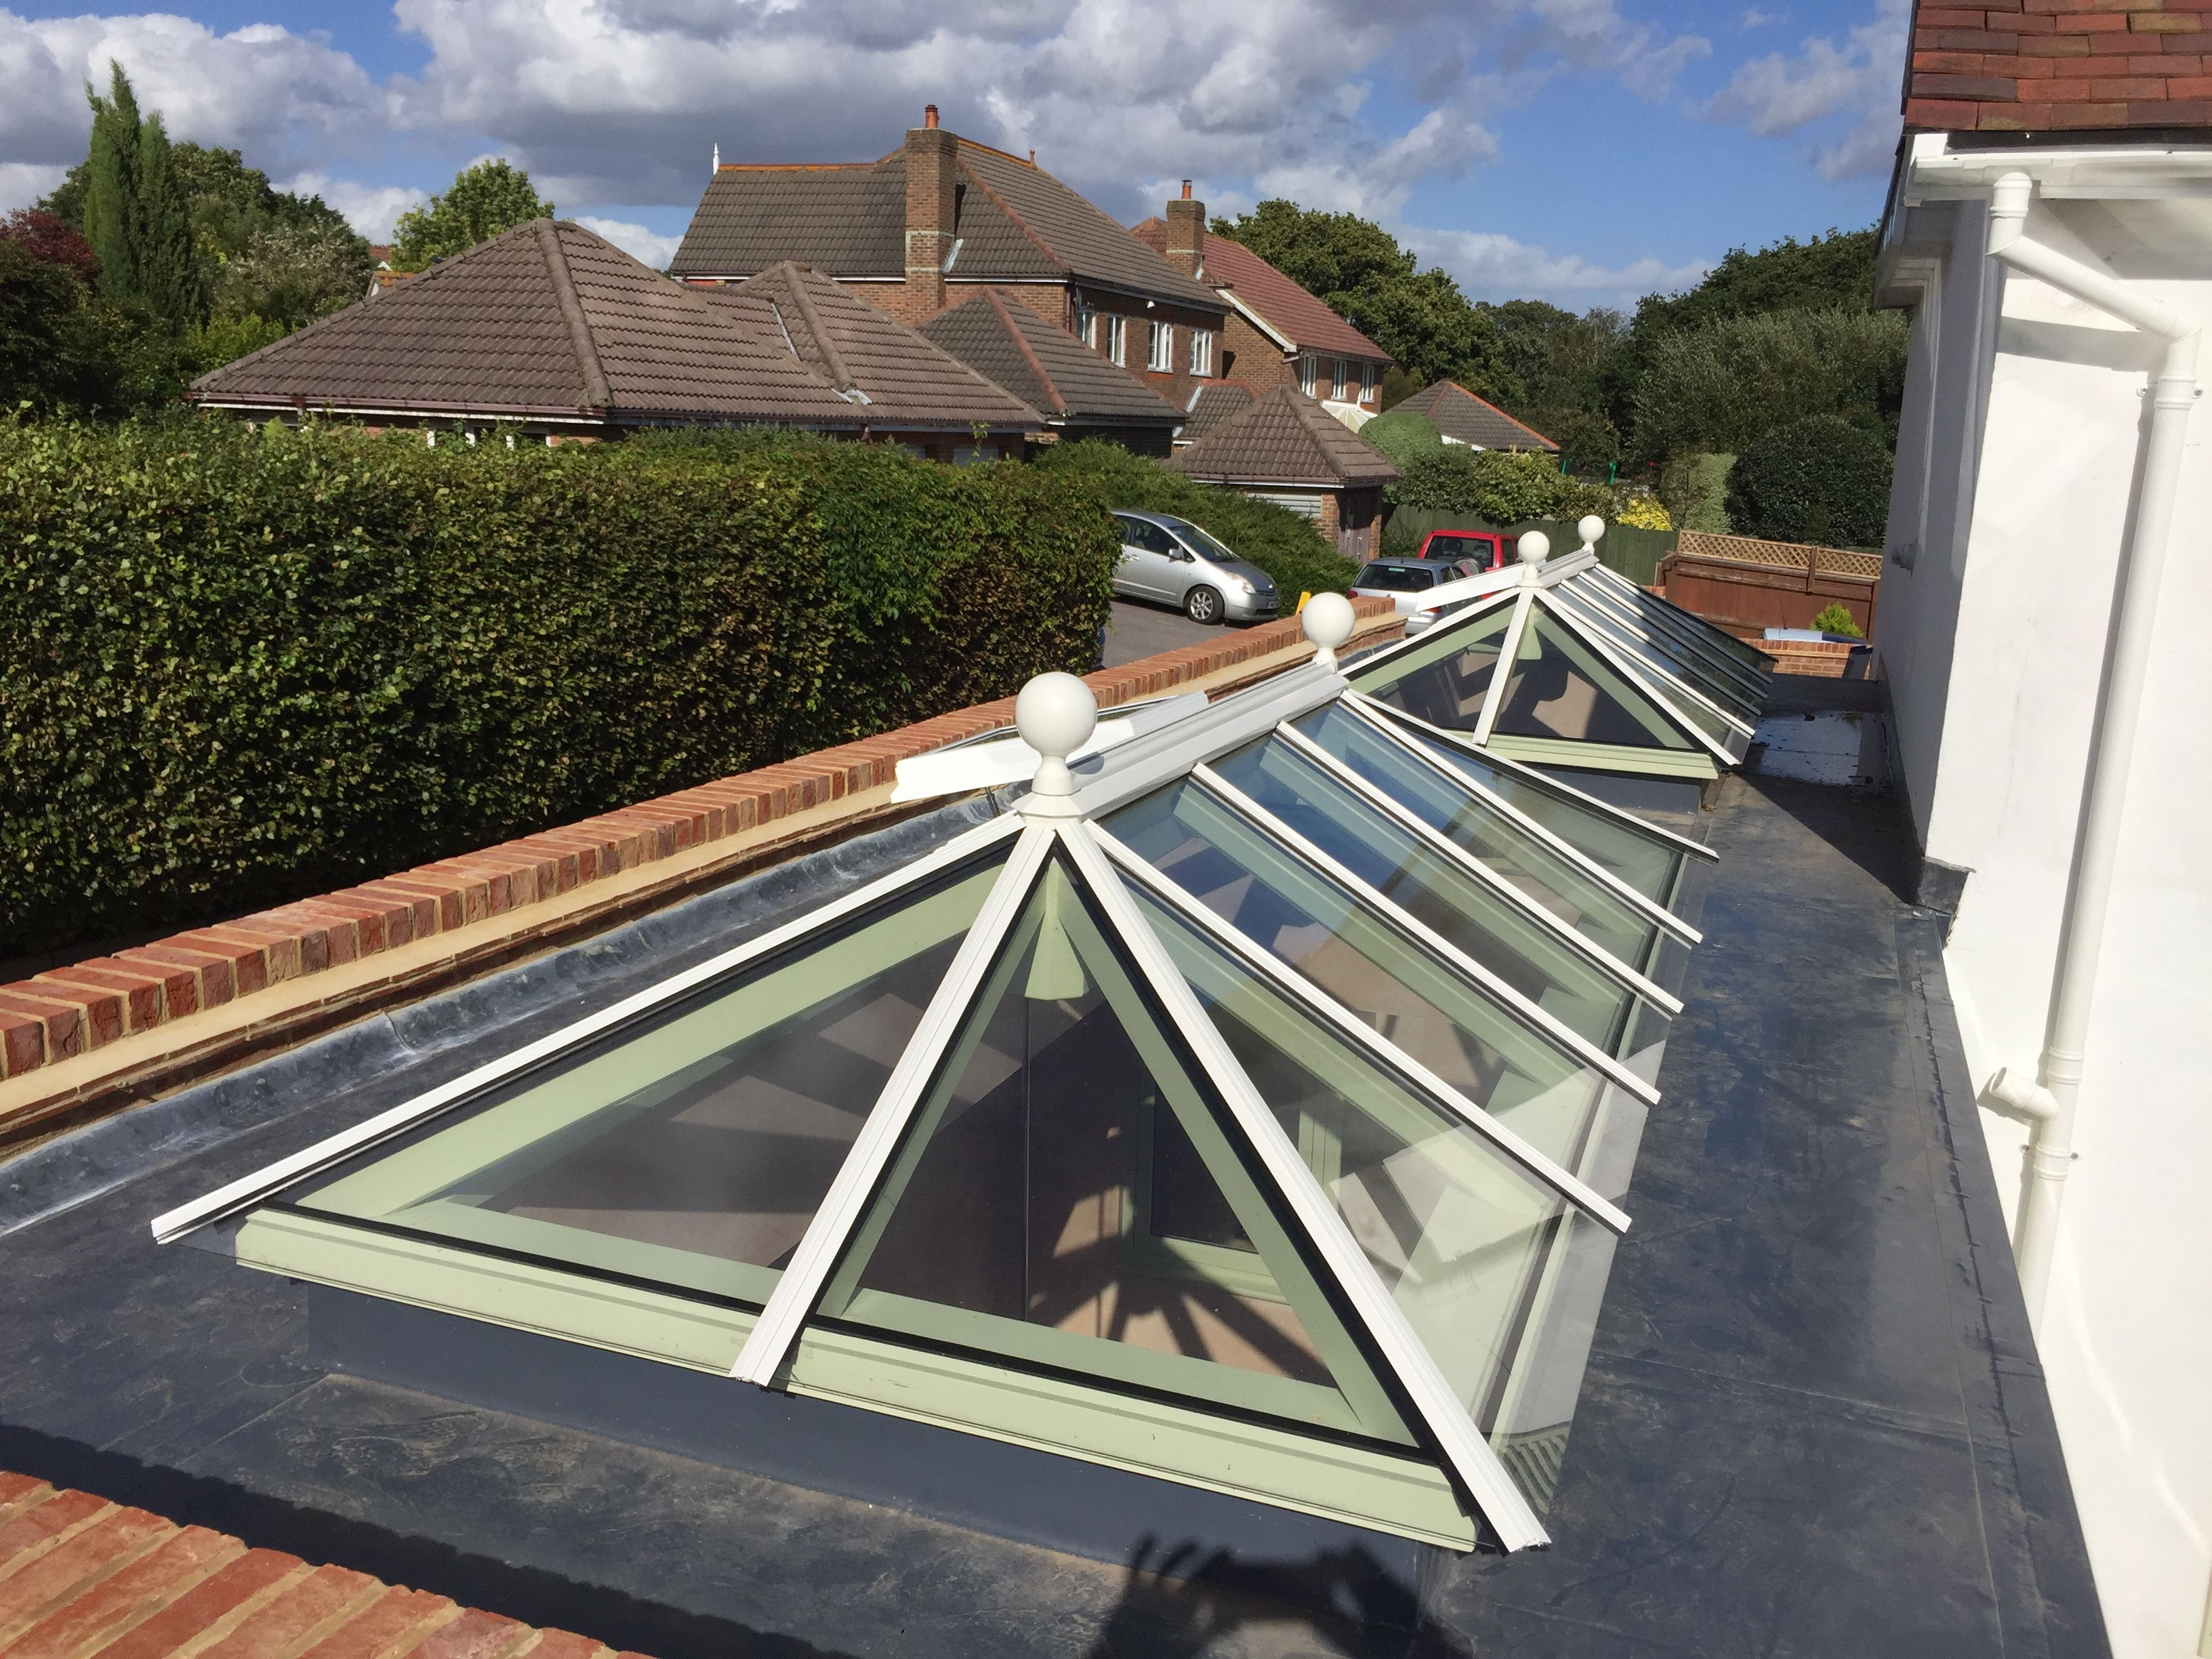 Timber Roof Lantern French Doors And Windows Timber Roof Roof Architecture Roof Lantern